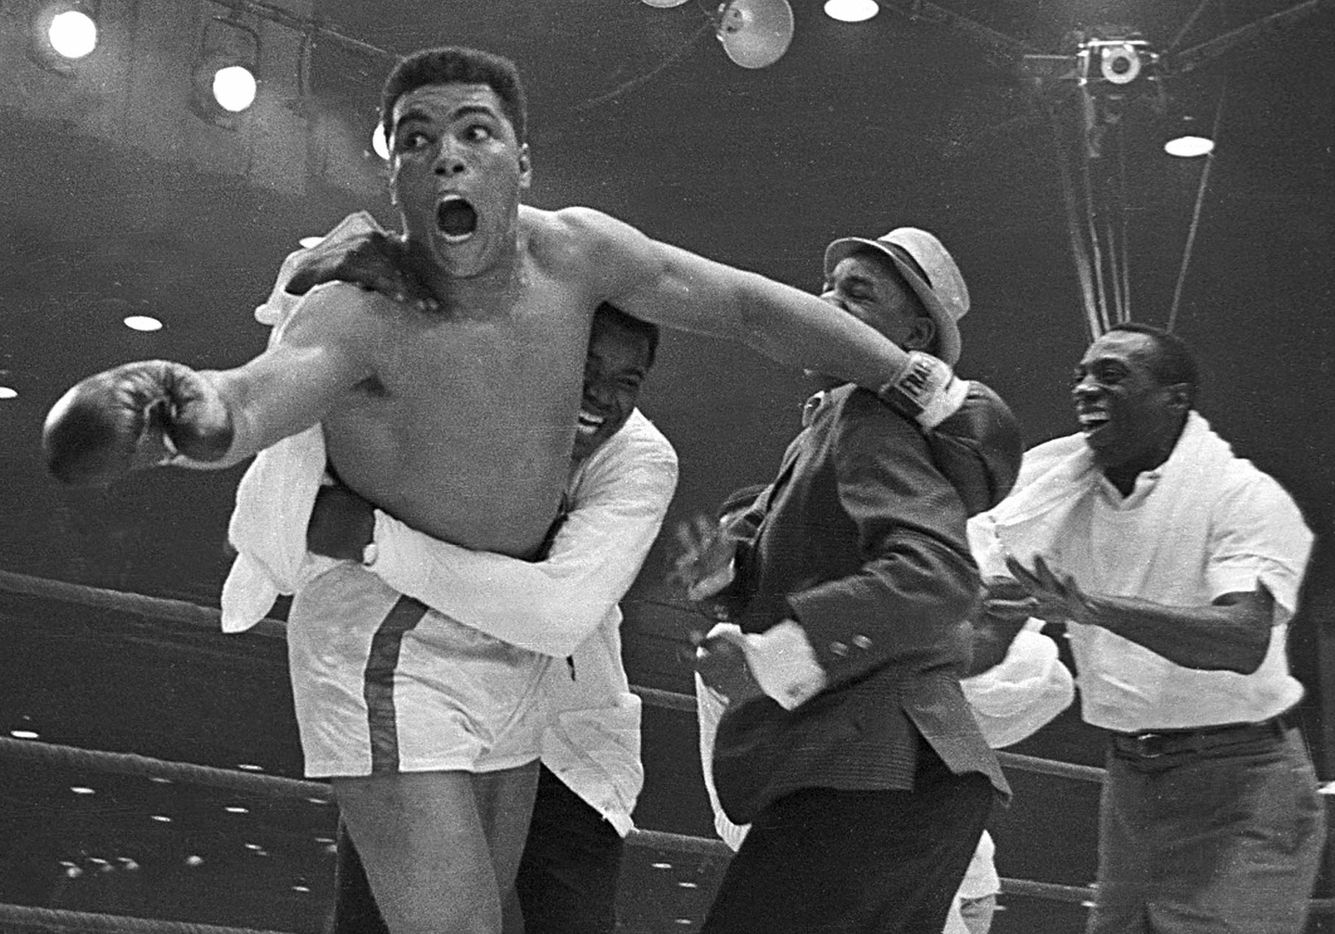 Cassius Clay's handlers hold him back as he reacts after he is announced the new heavyweight champion of the world on a seventh round TKO against Sonny Liston in Miami Beach, Fla., on Feb. 25, 1964, yelling to the ringside reporters 'eat your words'.